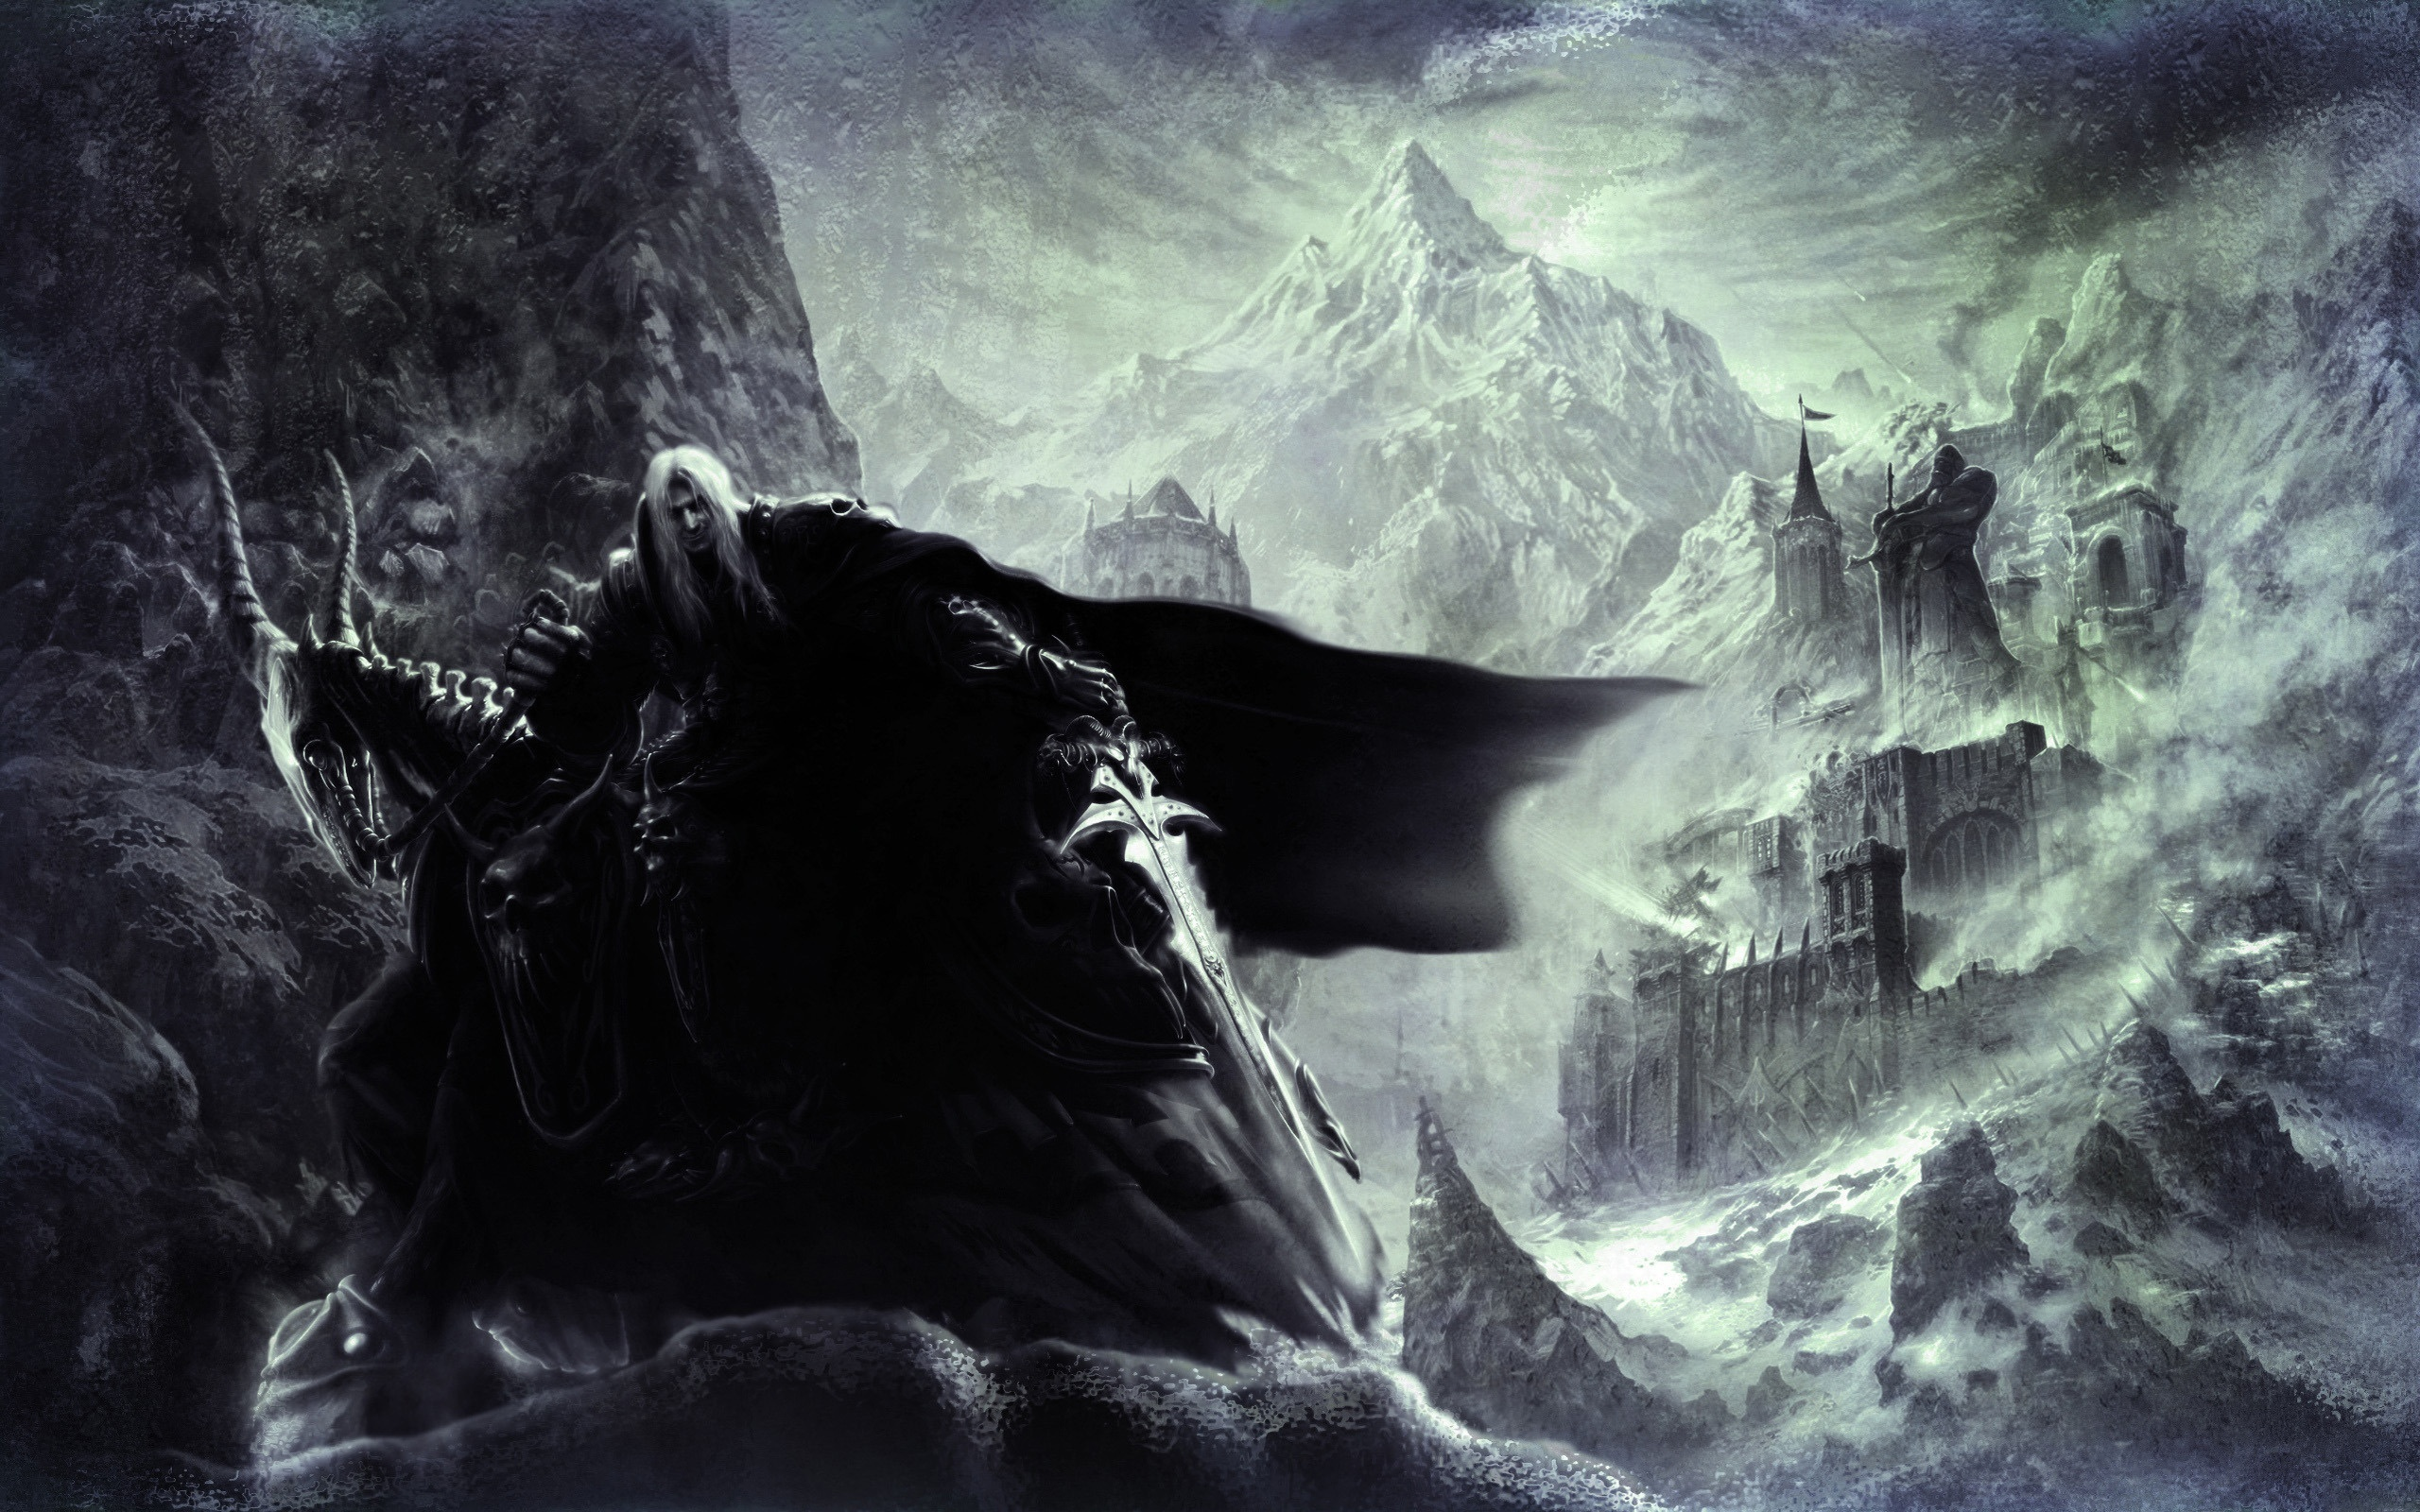 Lord of the Rings Wallpapers   2560x1600   1398170 2560x1600